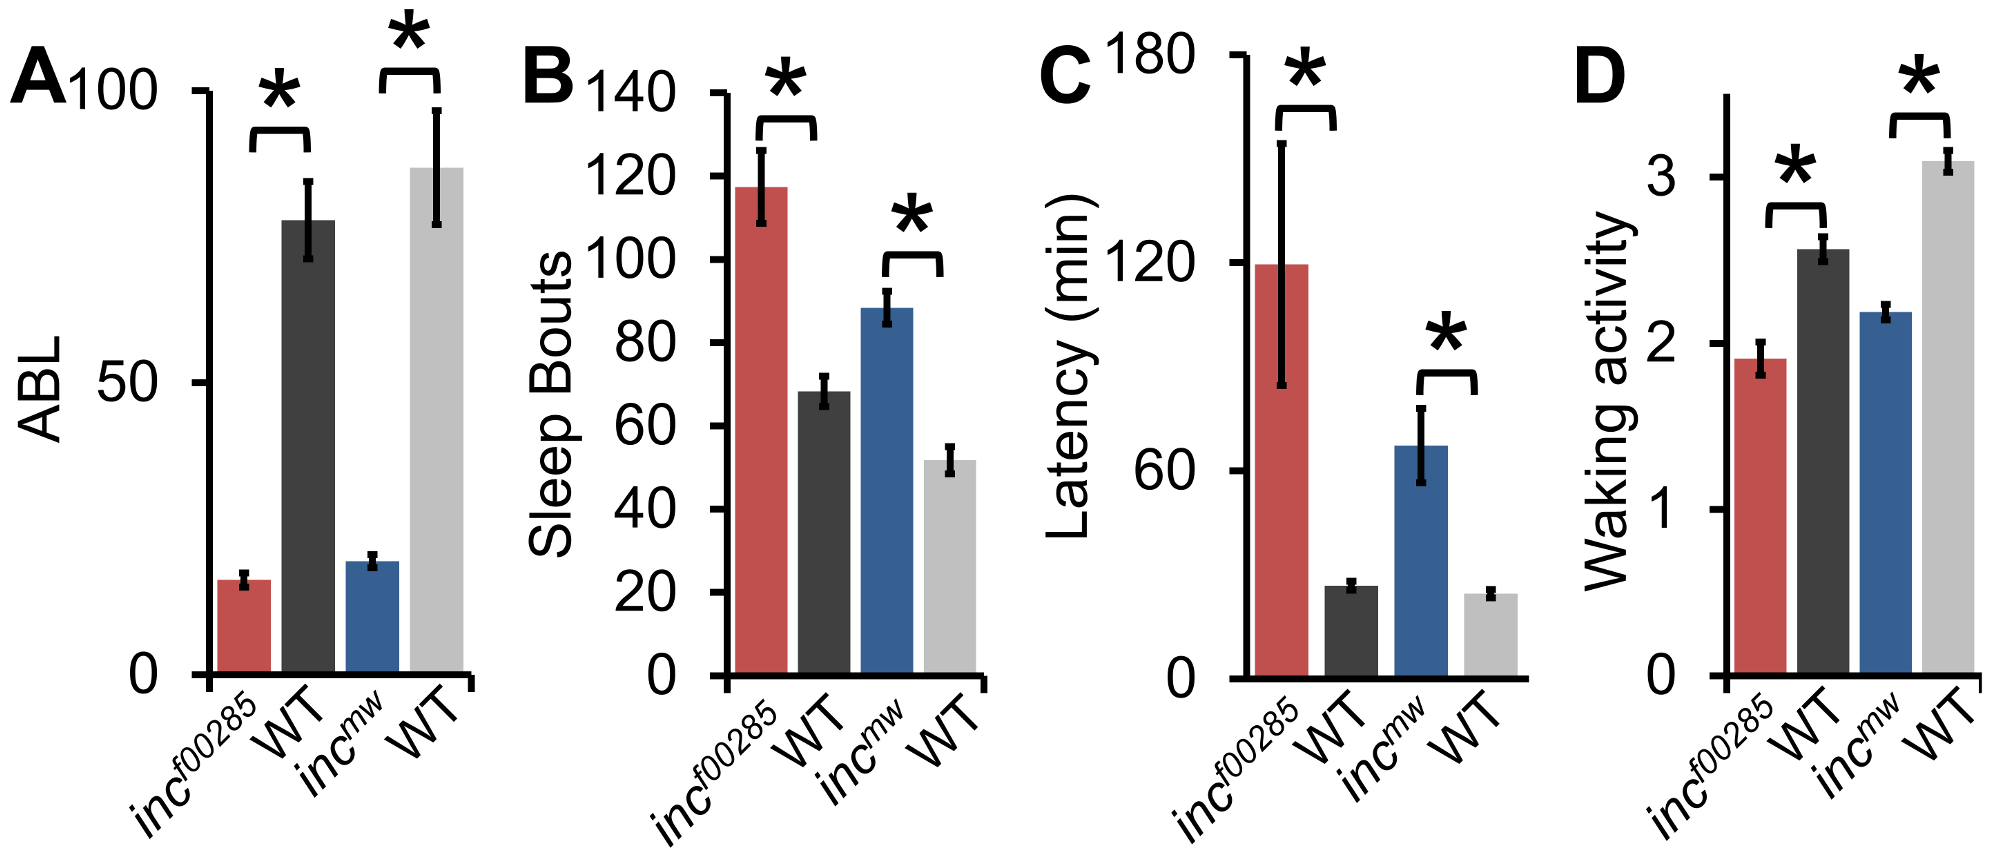 Sleep architecture is altered in <i>inc</i> mutants.